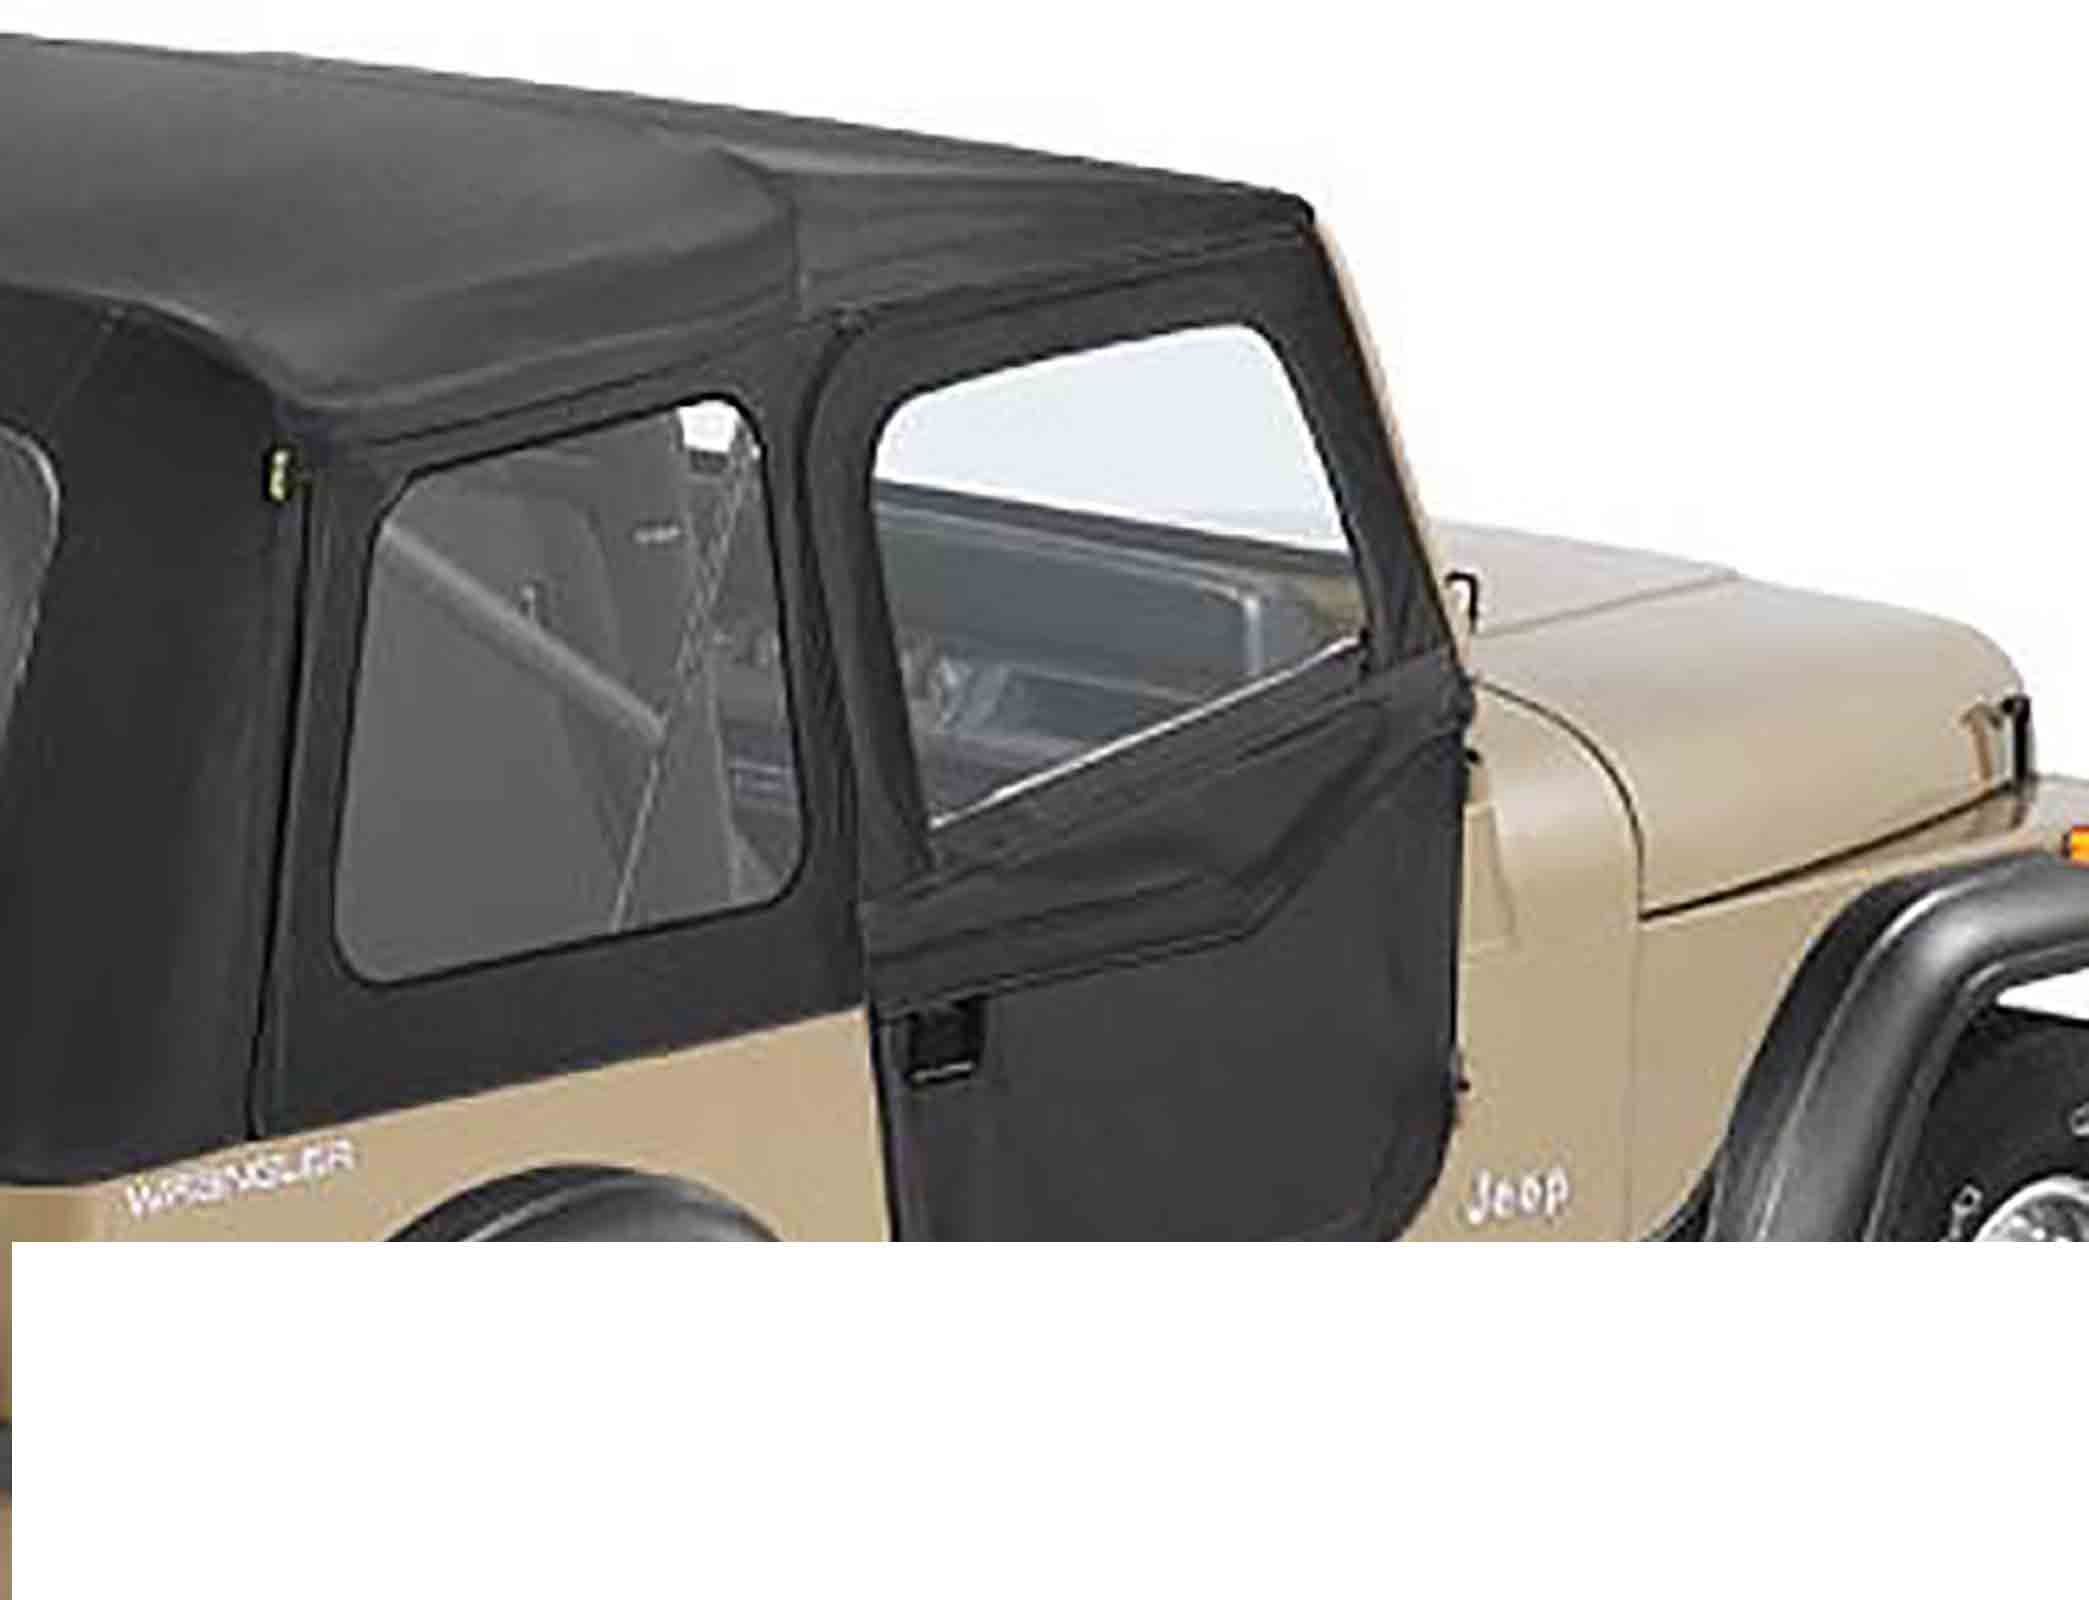 Porte divisibili jeep cj7 80 86 wrangler yj 87 95 black crush ricambi jeep